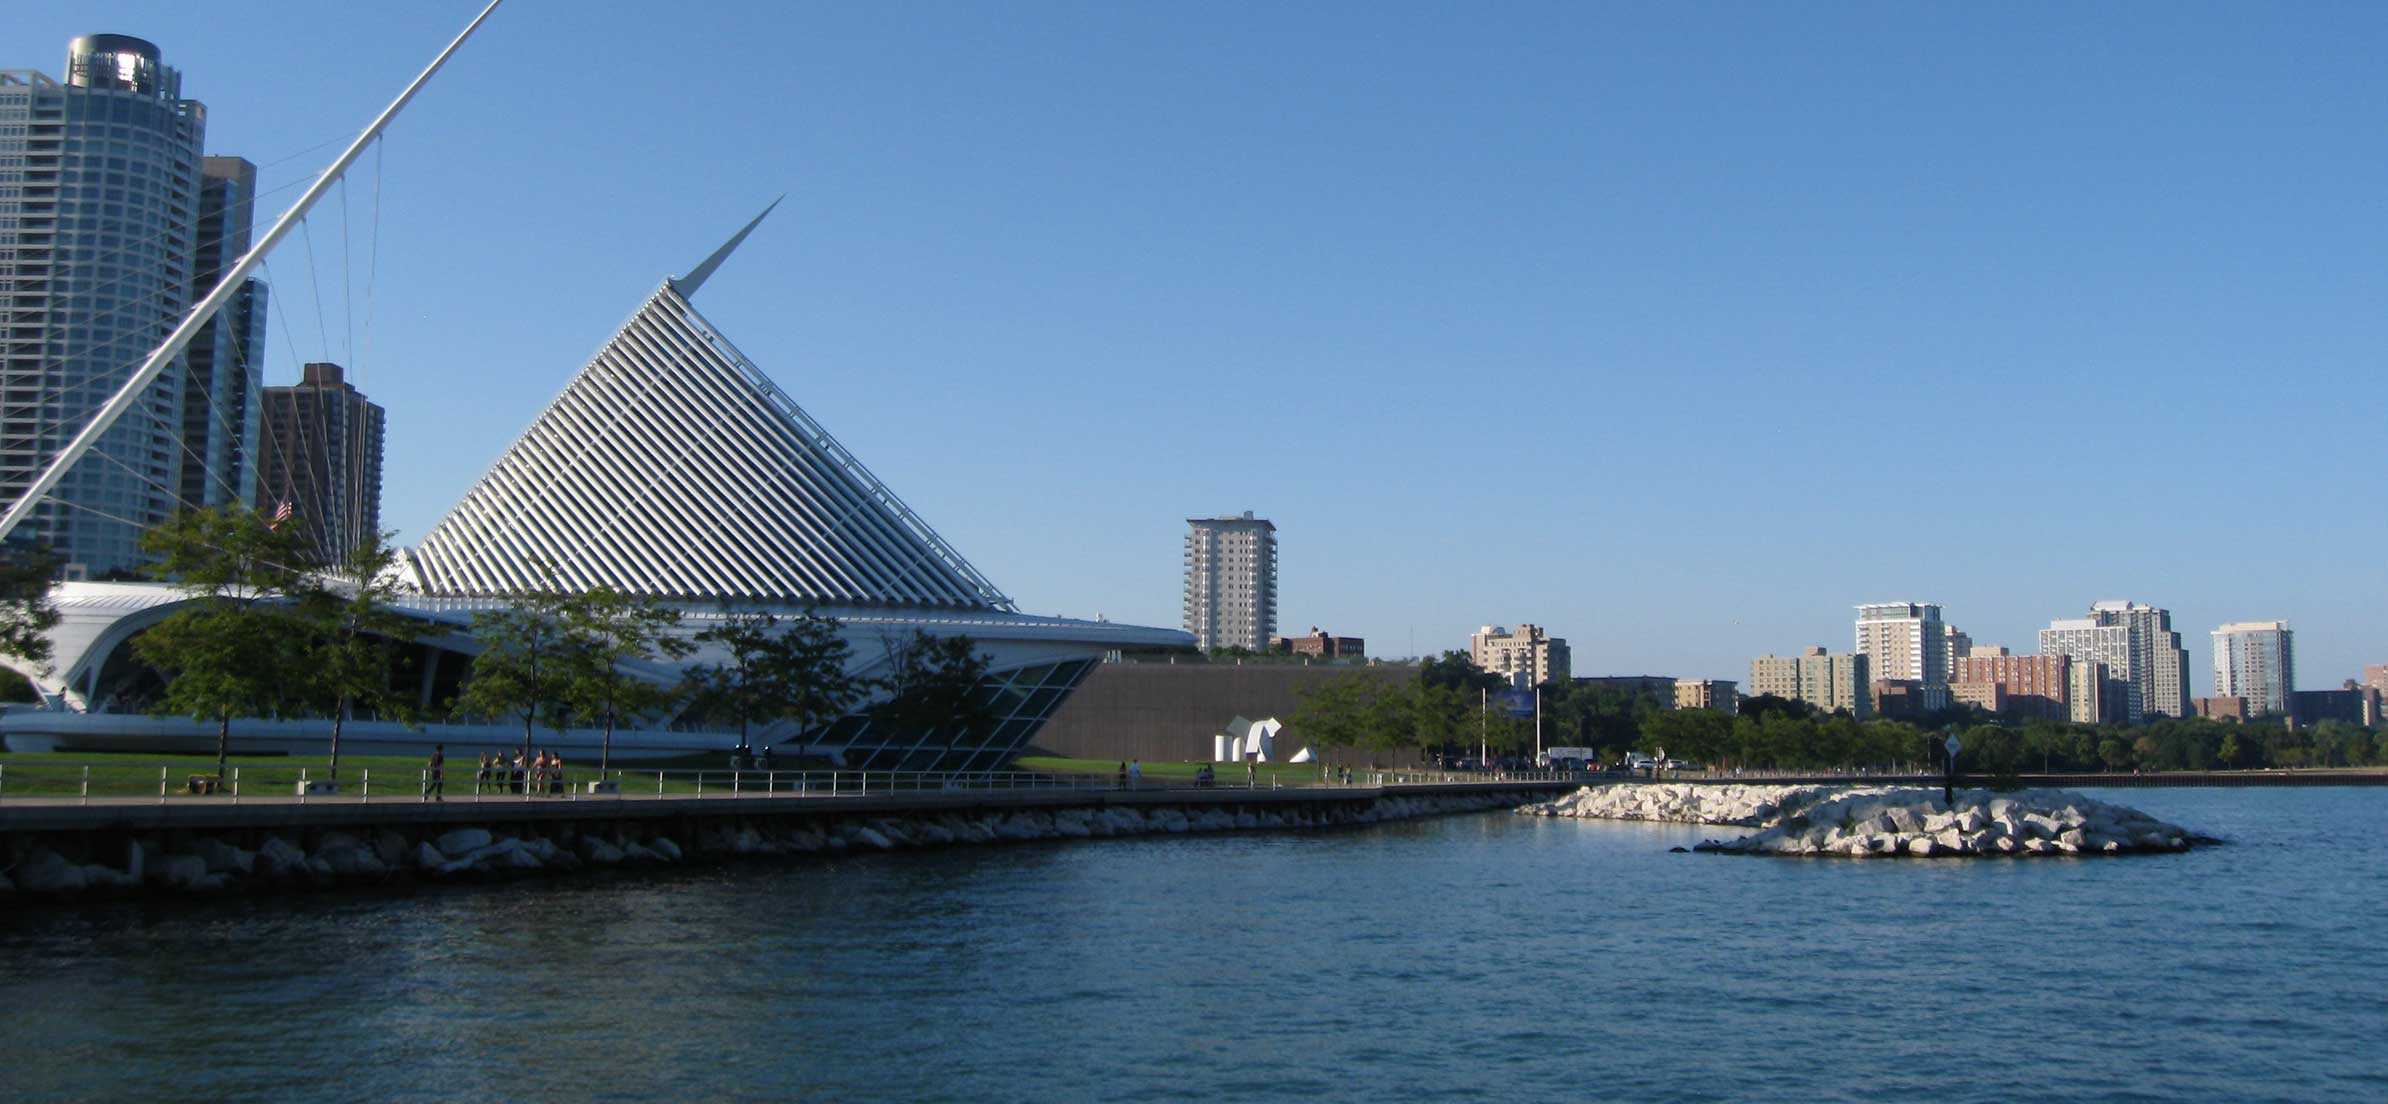 Exterior view of the Milwaukee Art Mumseum in Wisconsin USA